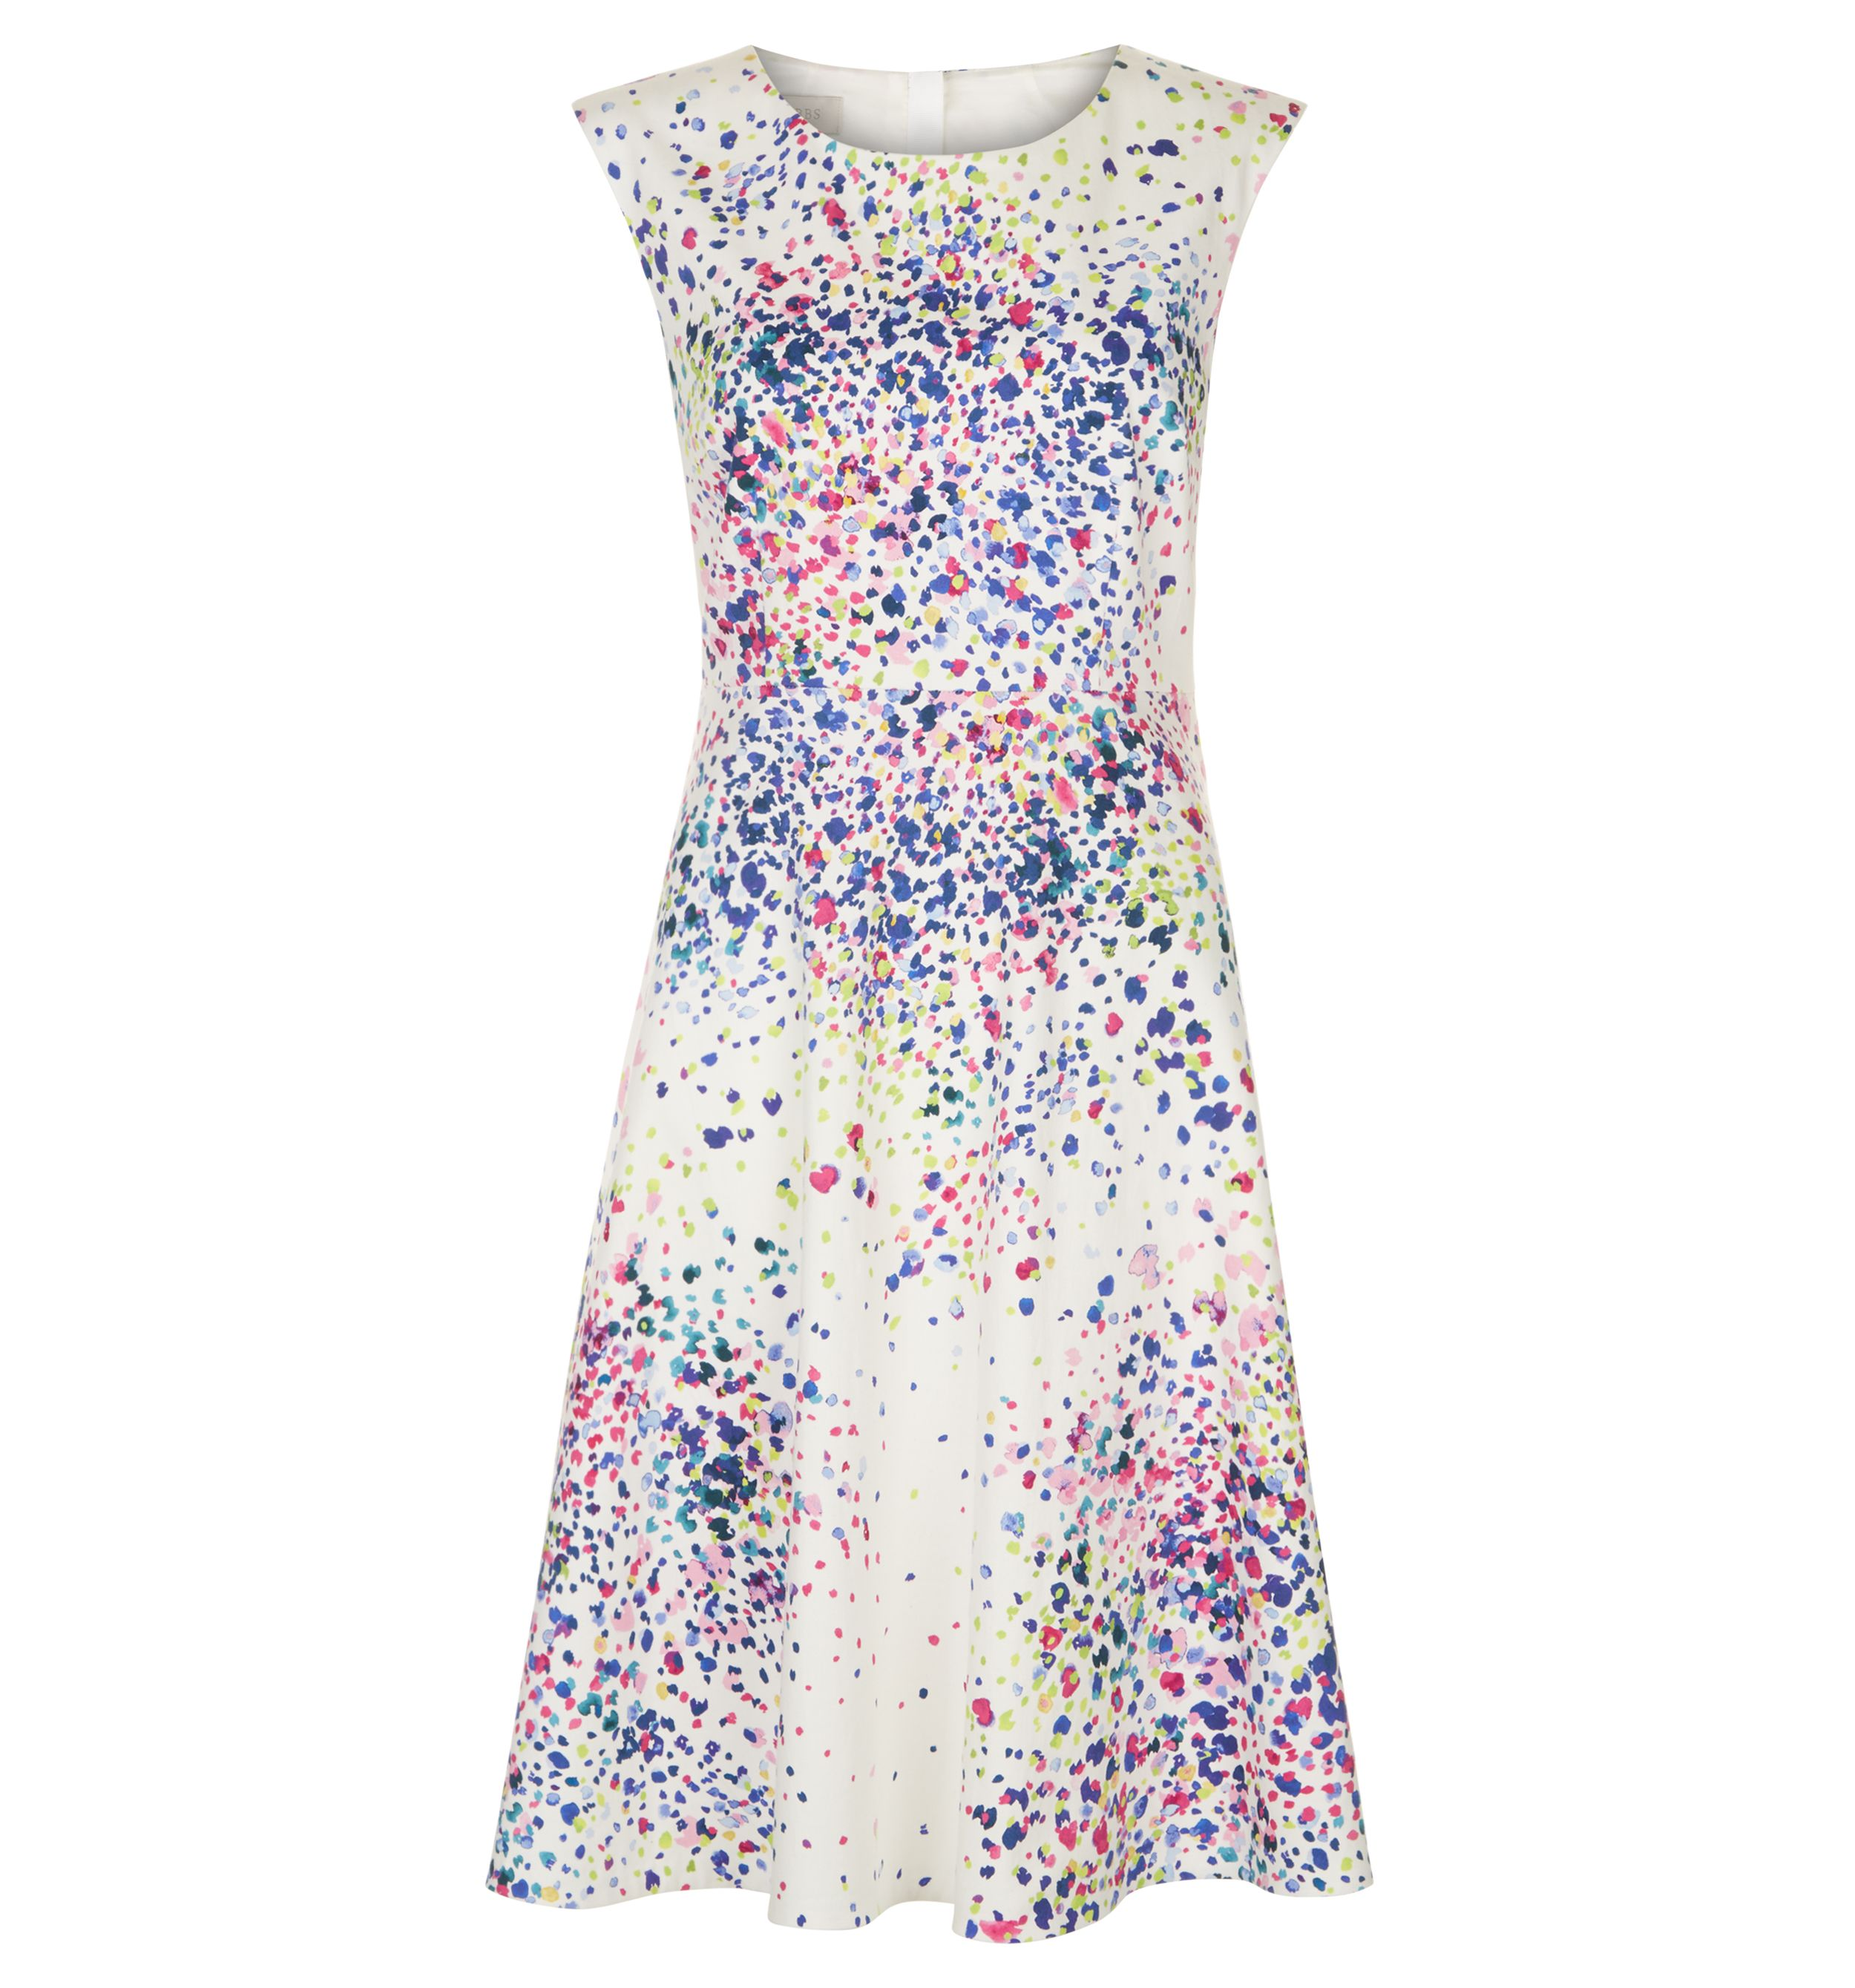 Hobbs Nova Dress, Multi-Coloured